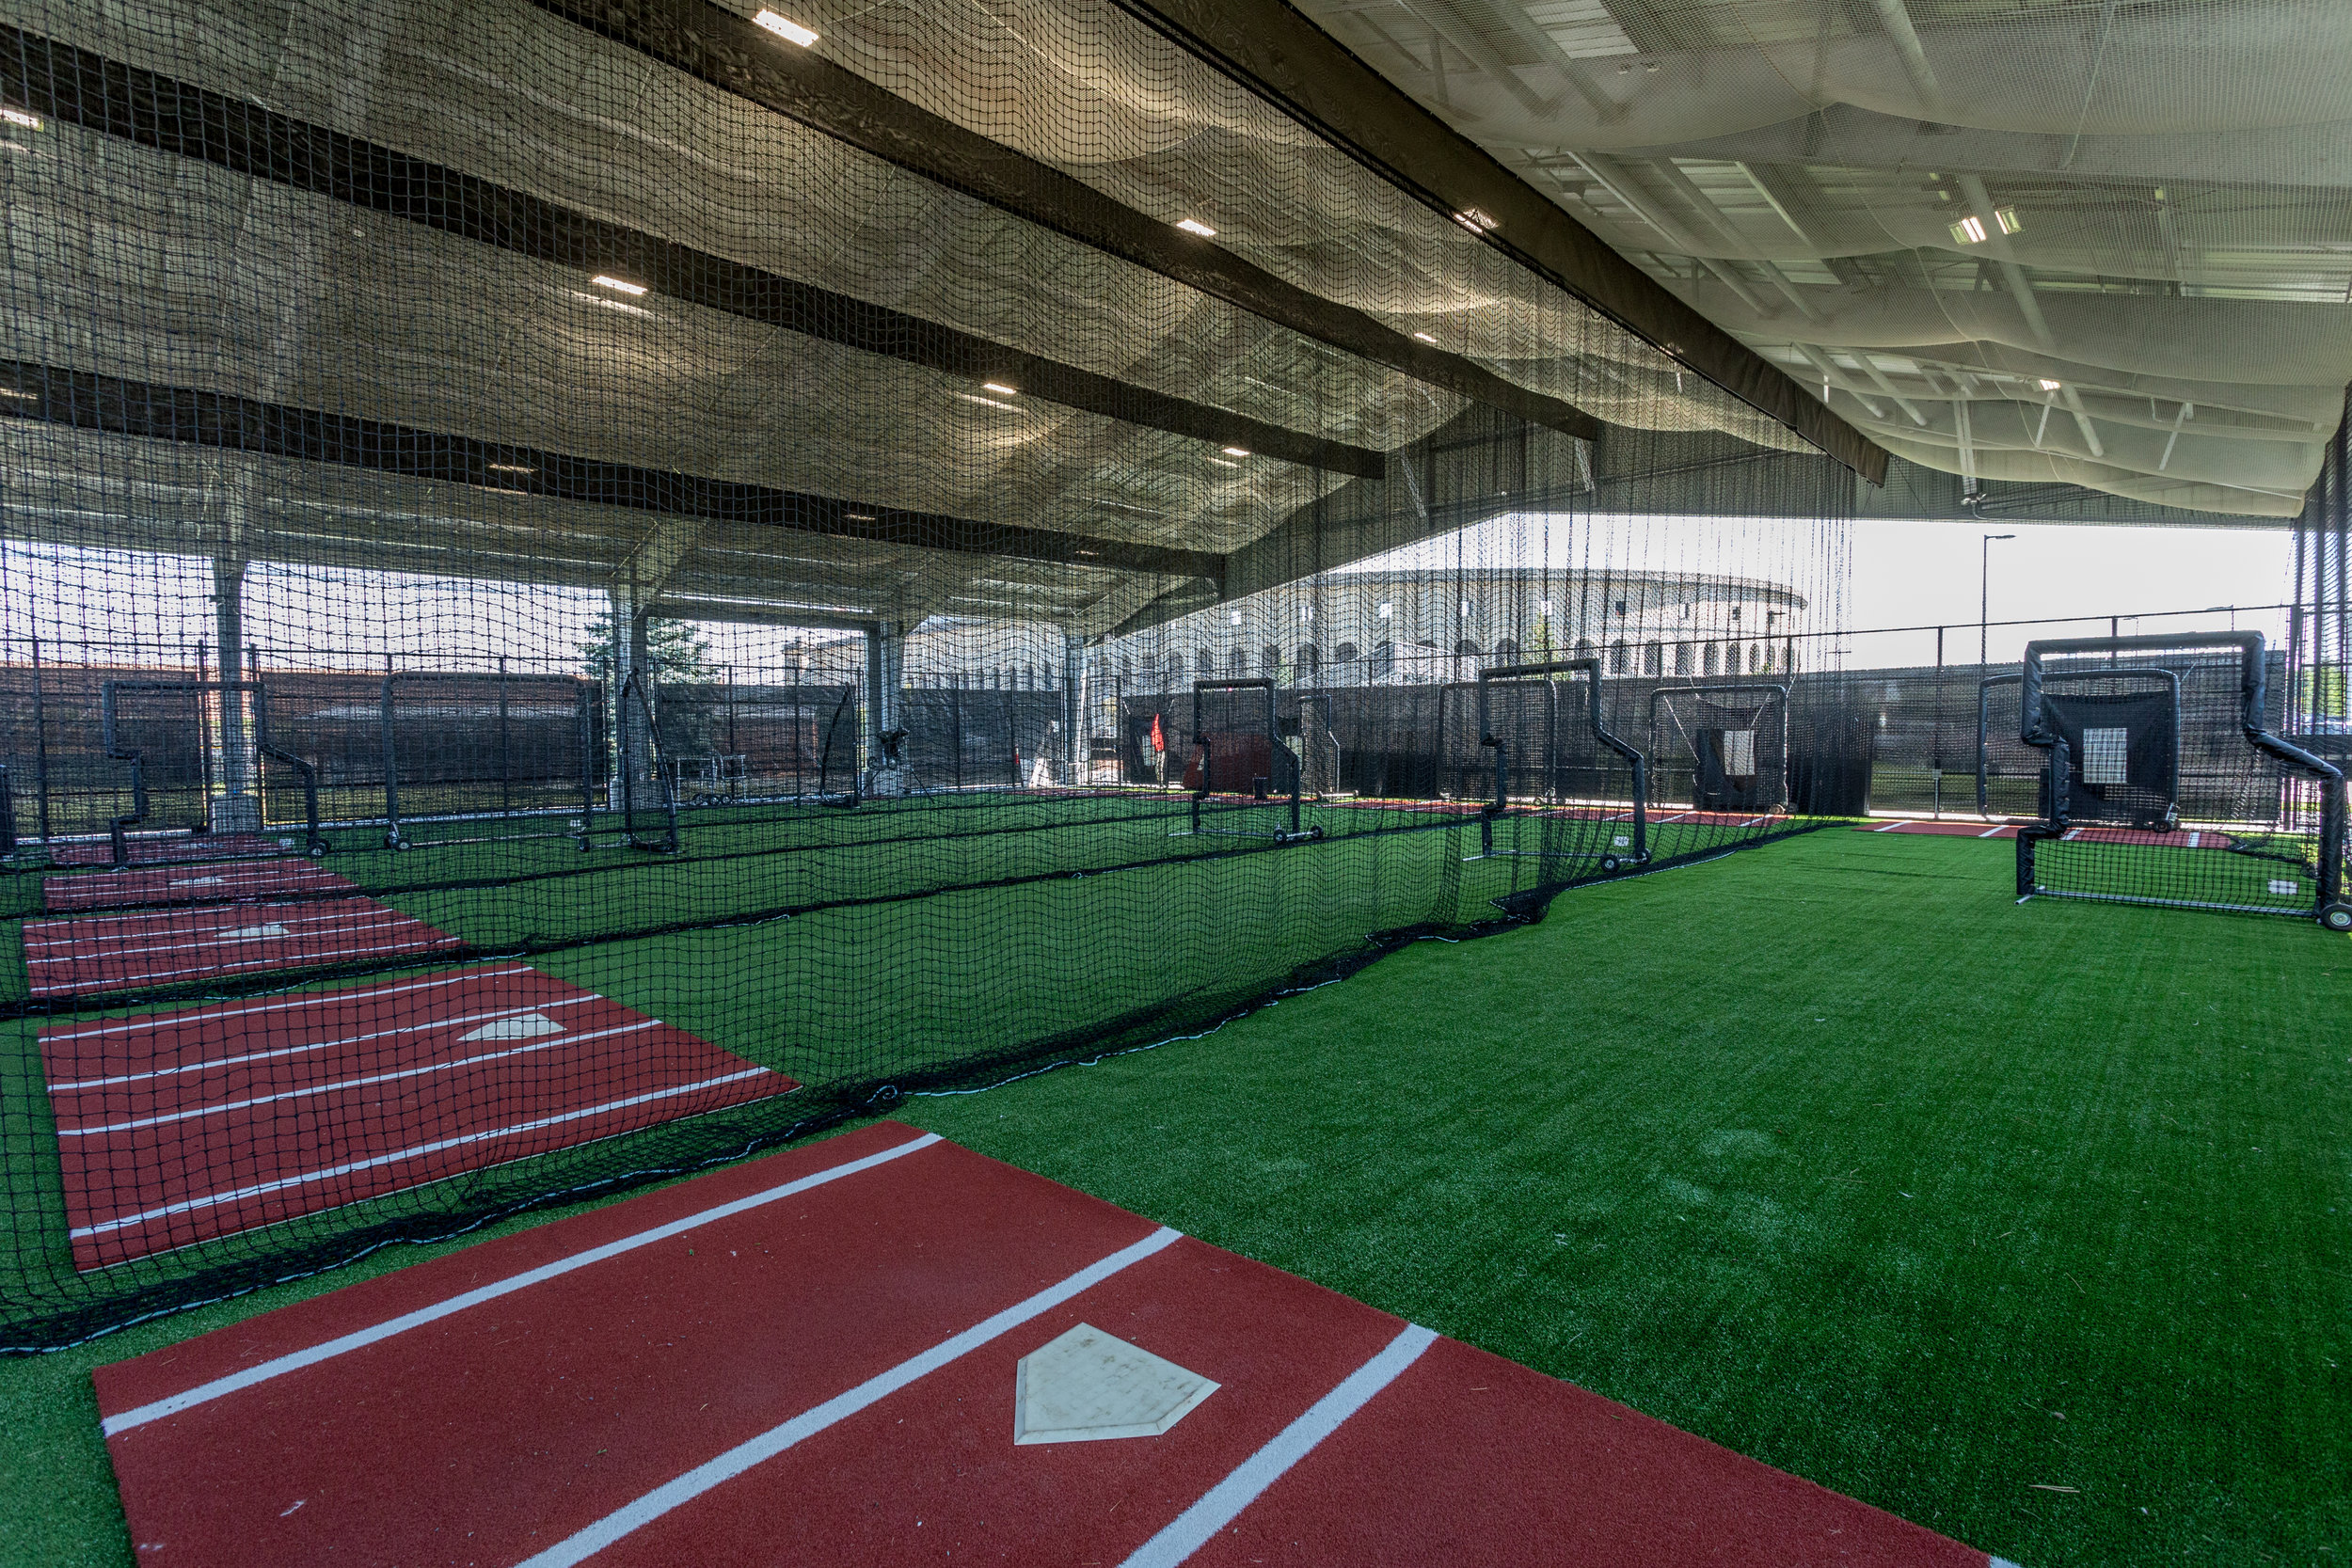 17-121-Harvard-BattingCages-5077-20180906.jpg